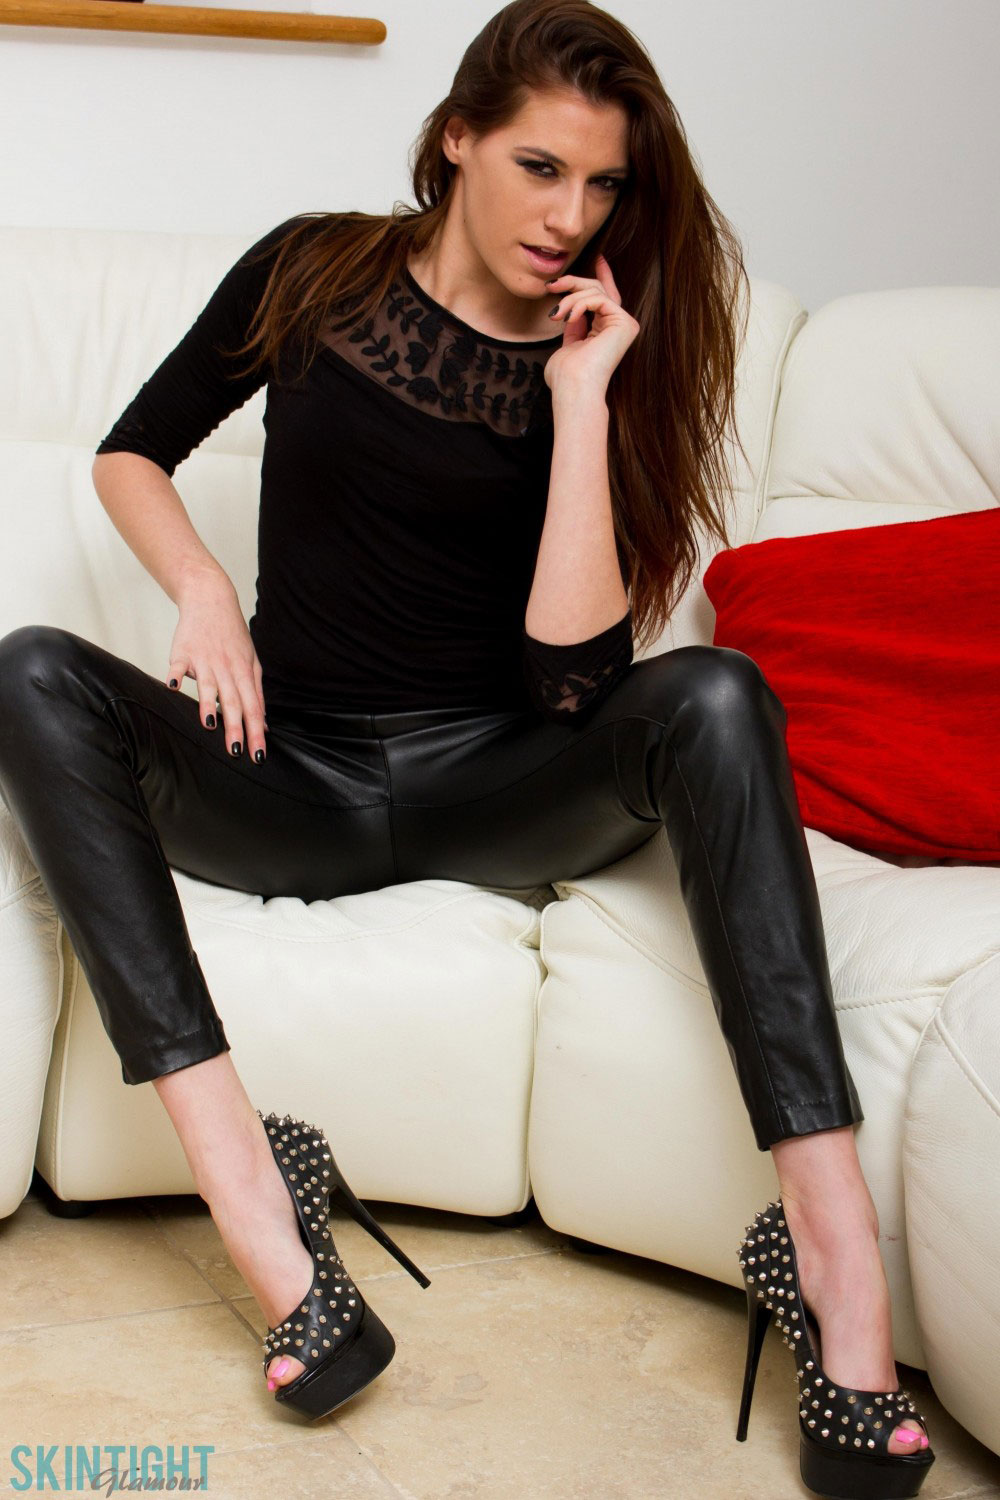 Pantyhose tight jeans